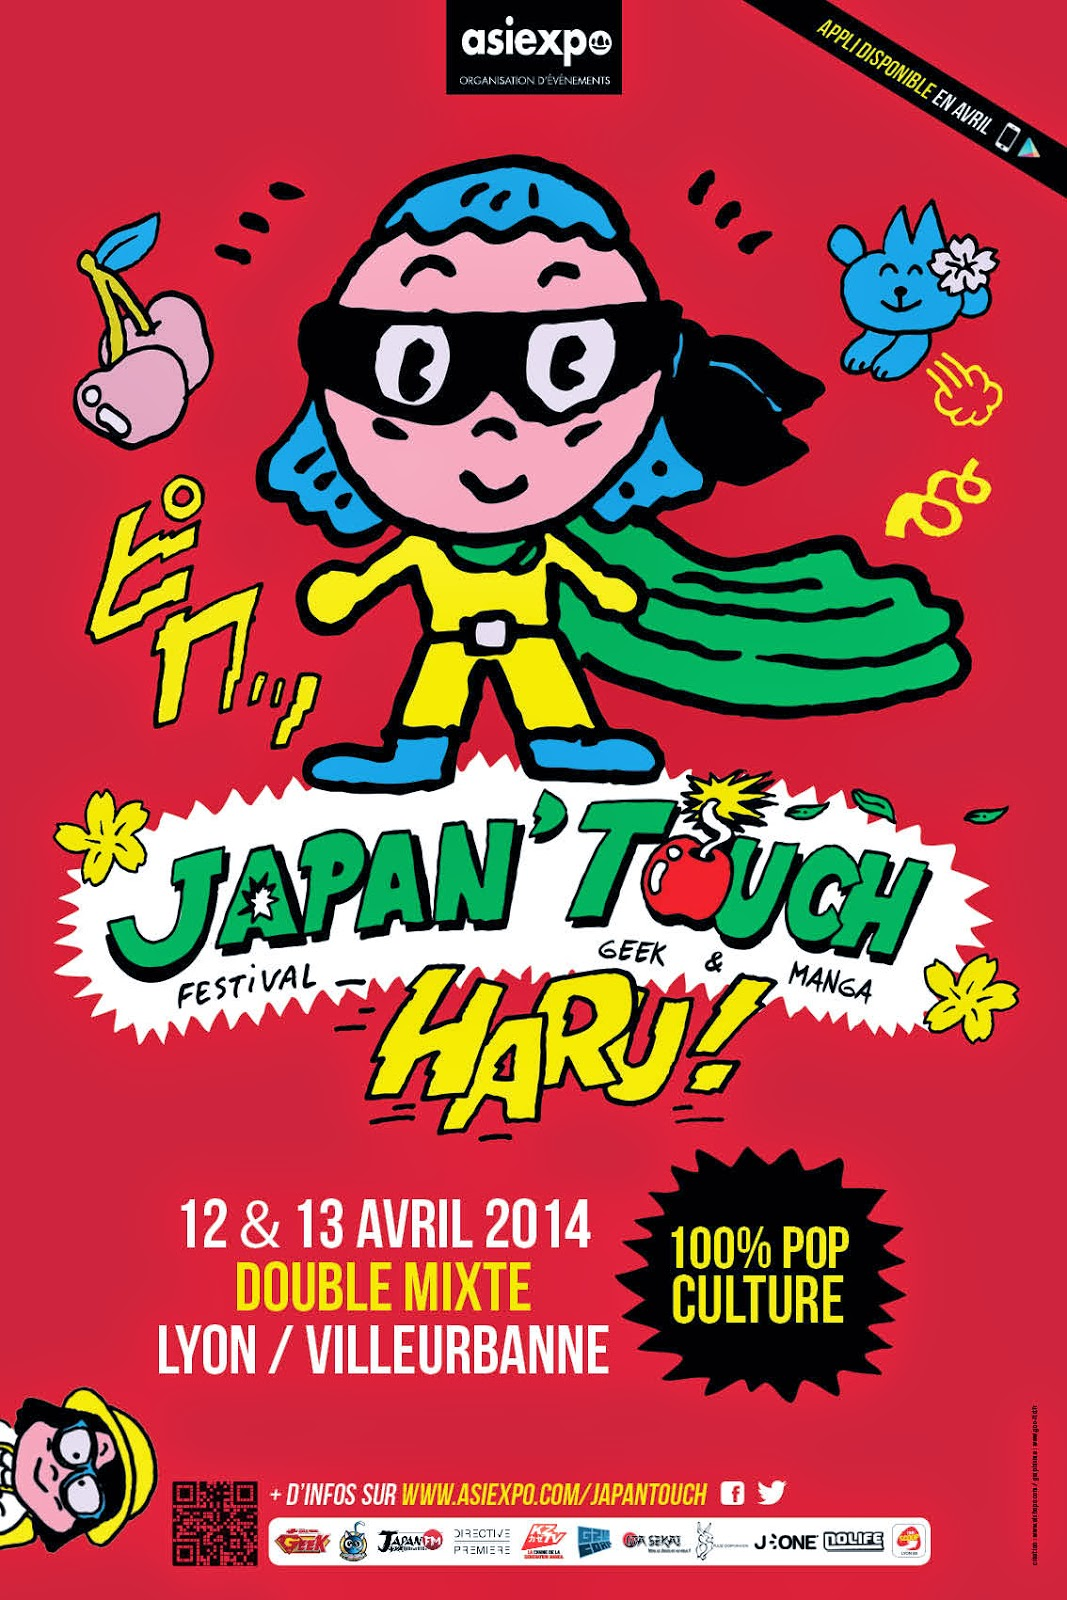 affiche de la convention haru japan touch